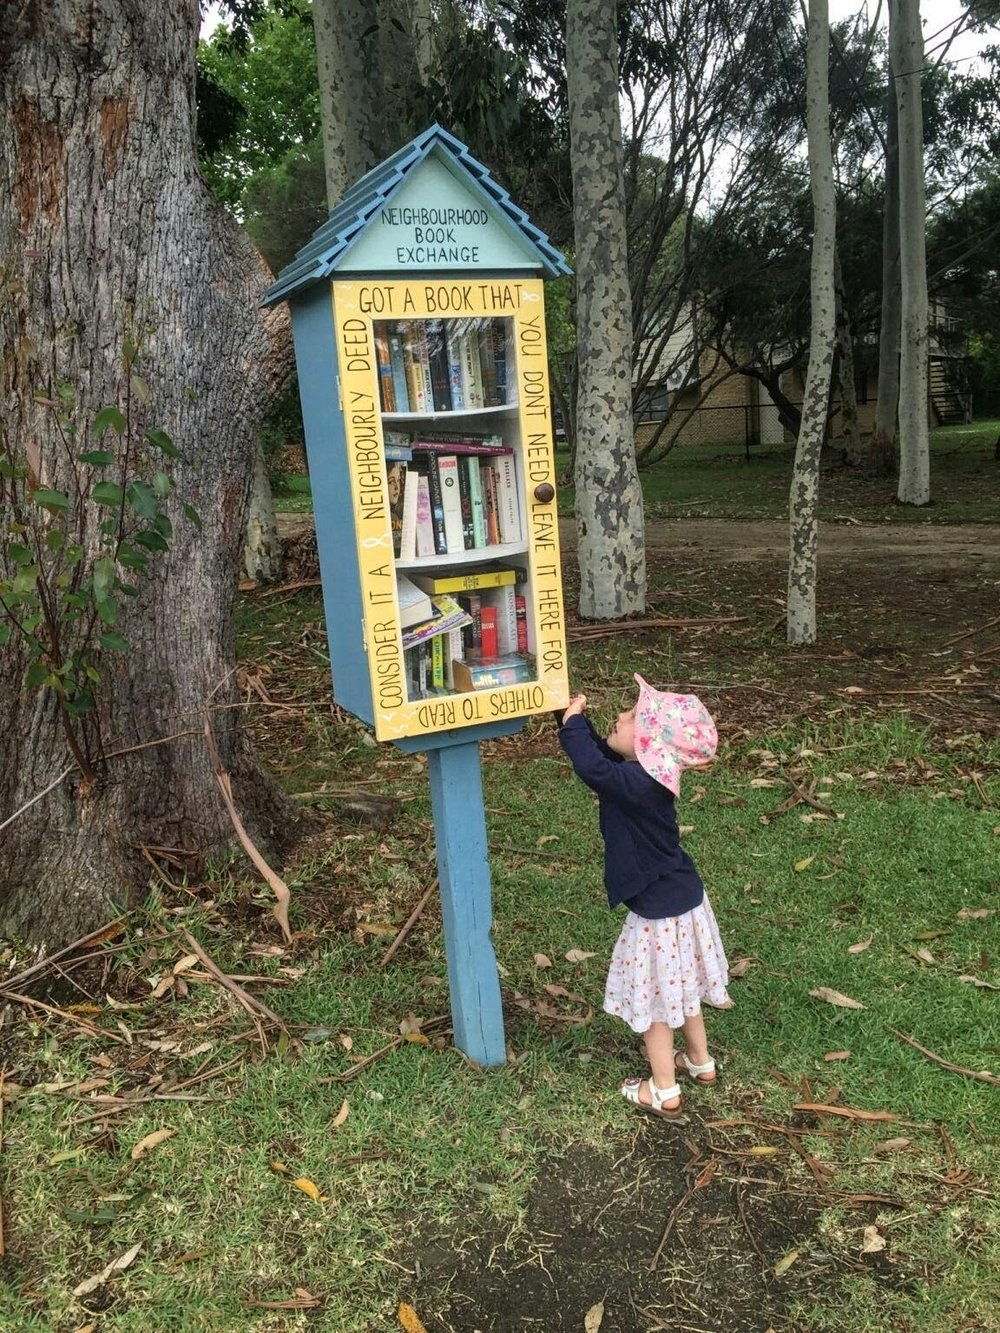 Street Library in a park